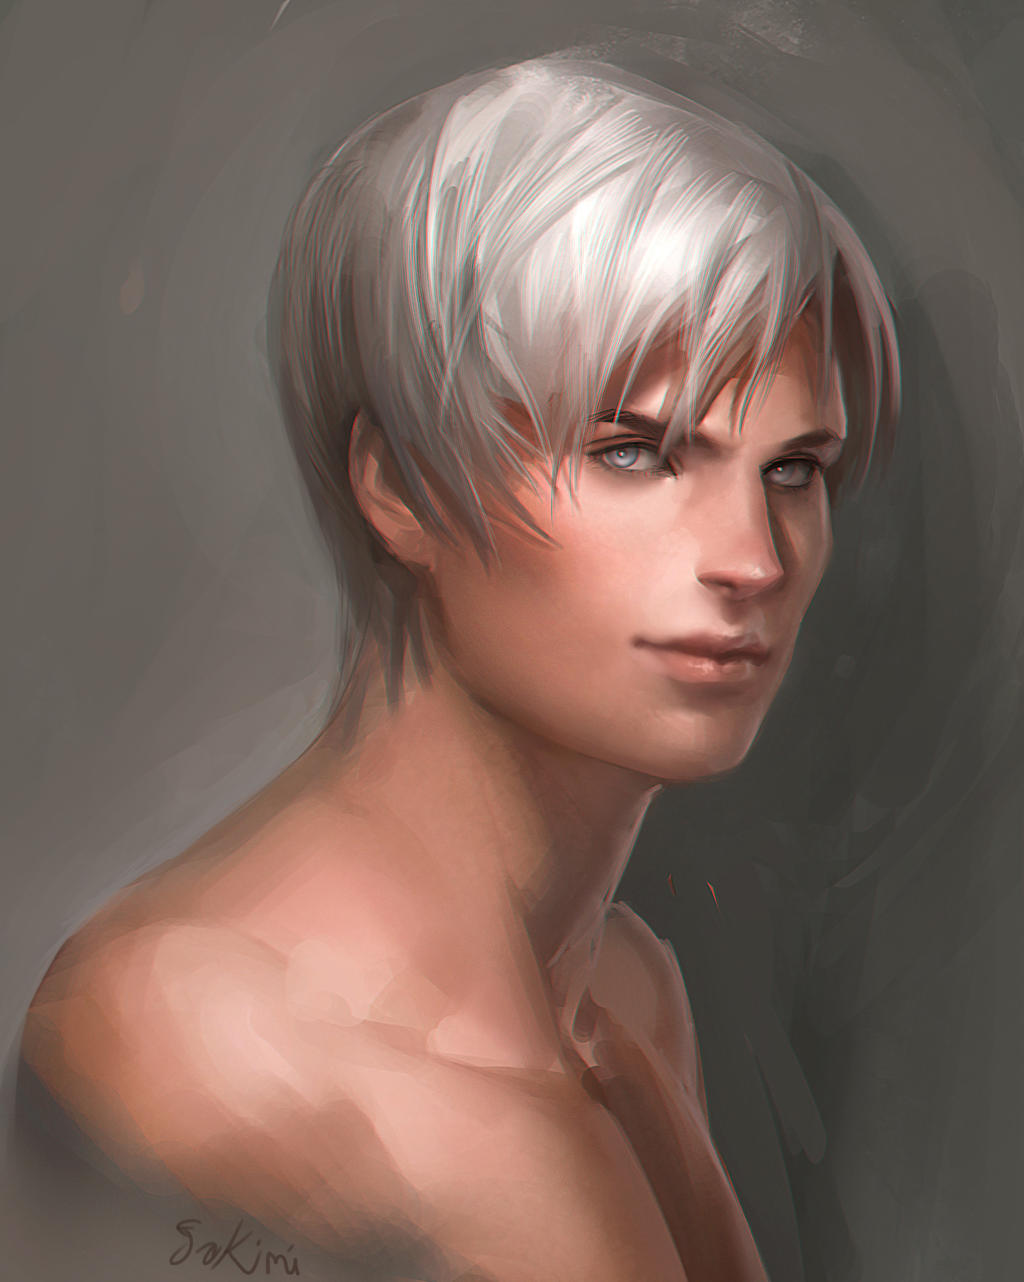 portrait by sakimichan